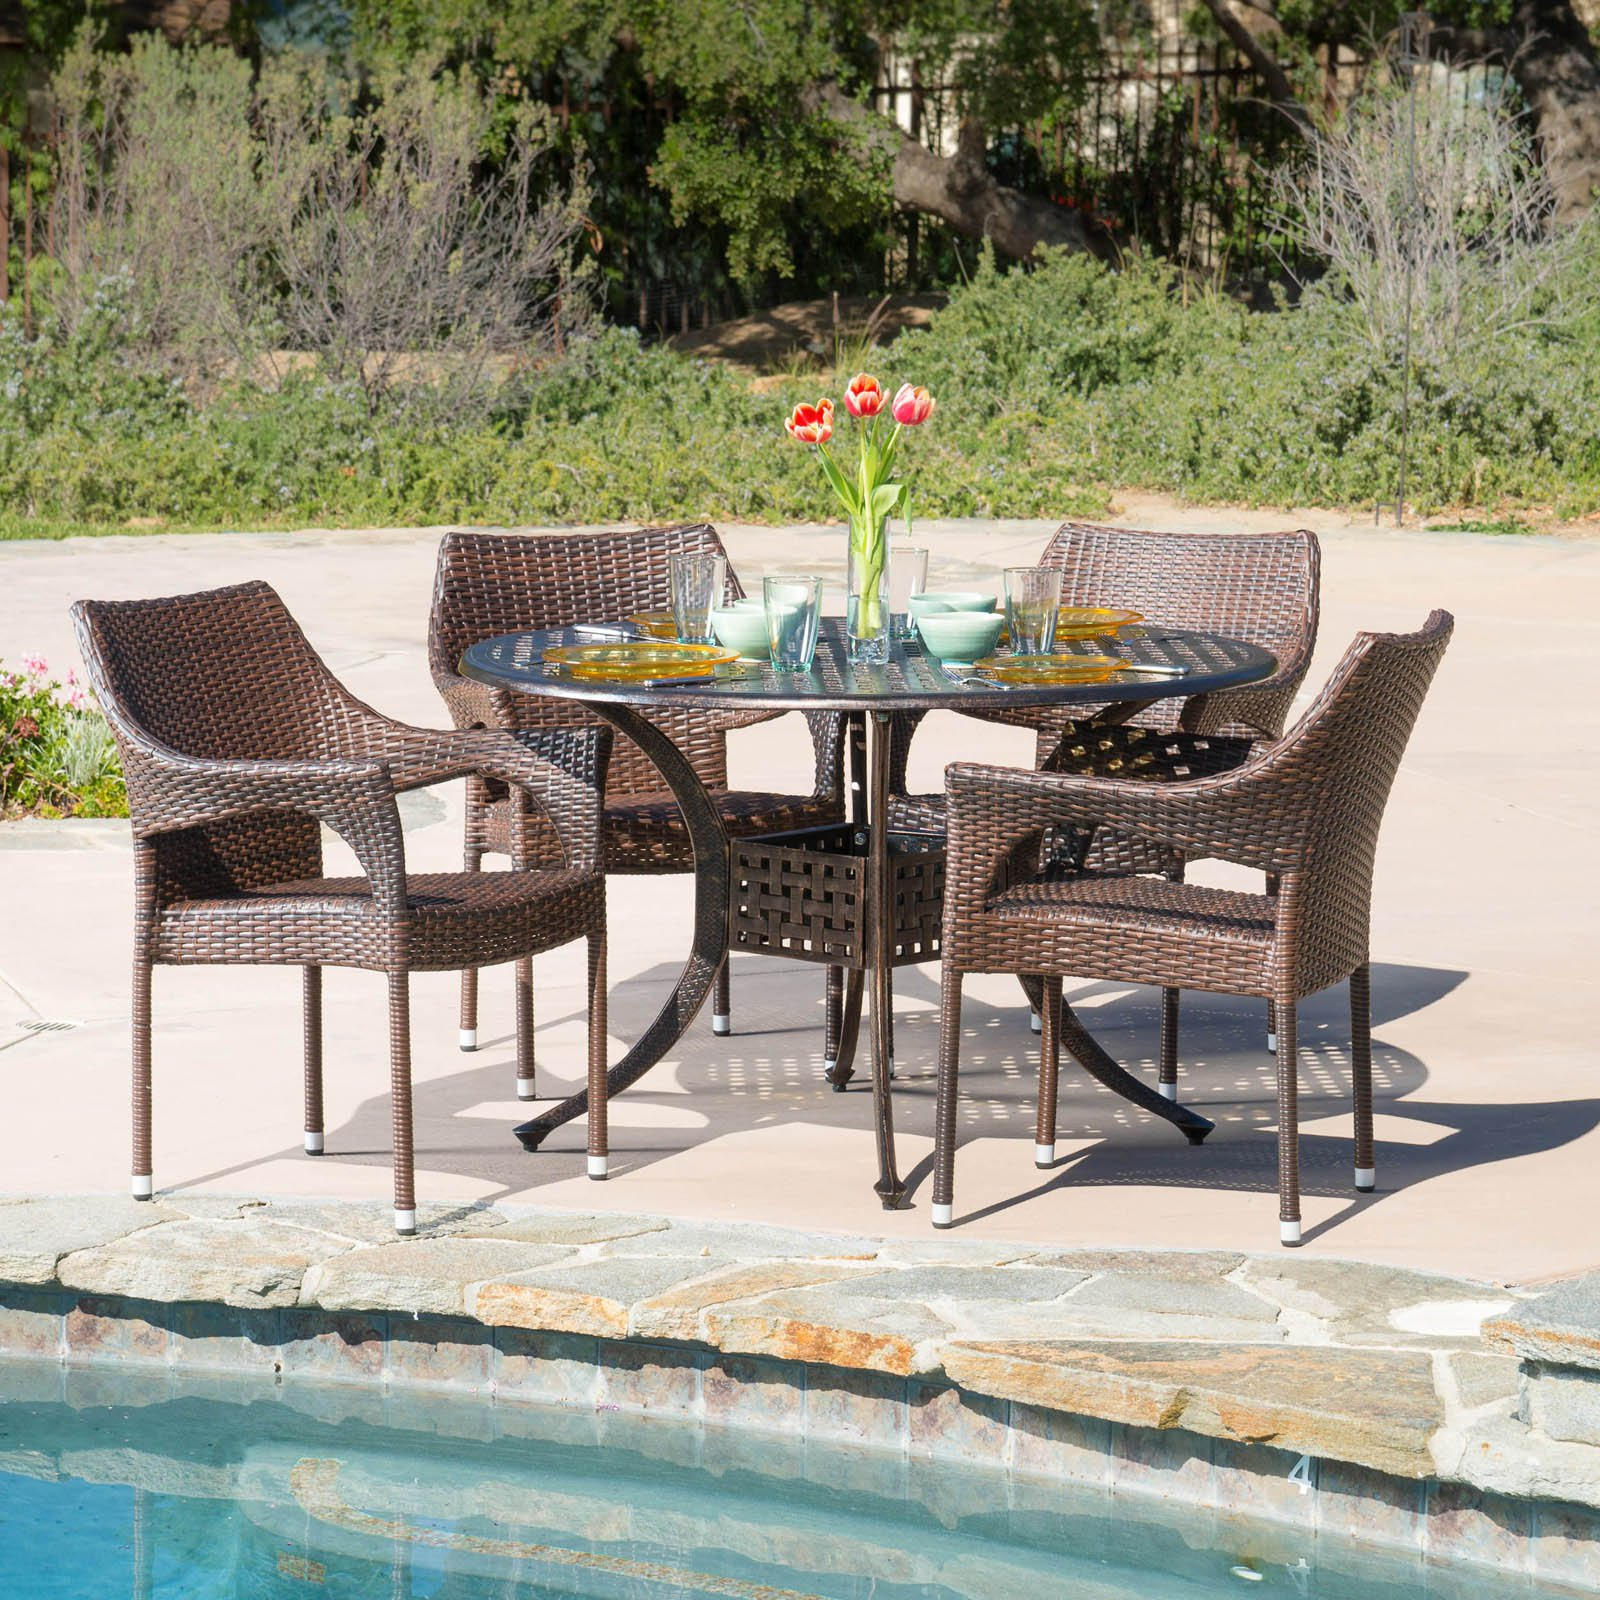 Best Selling Home Decor Furniture Pill Wicker 5 Piece Round Patio Dining Room Set by Best Selling Home Decor Furniture LLC